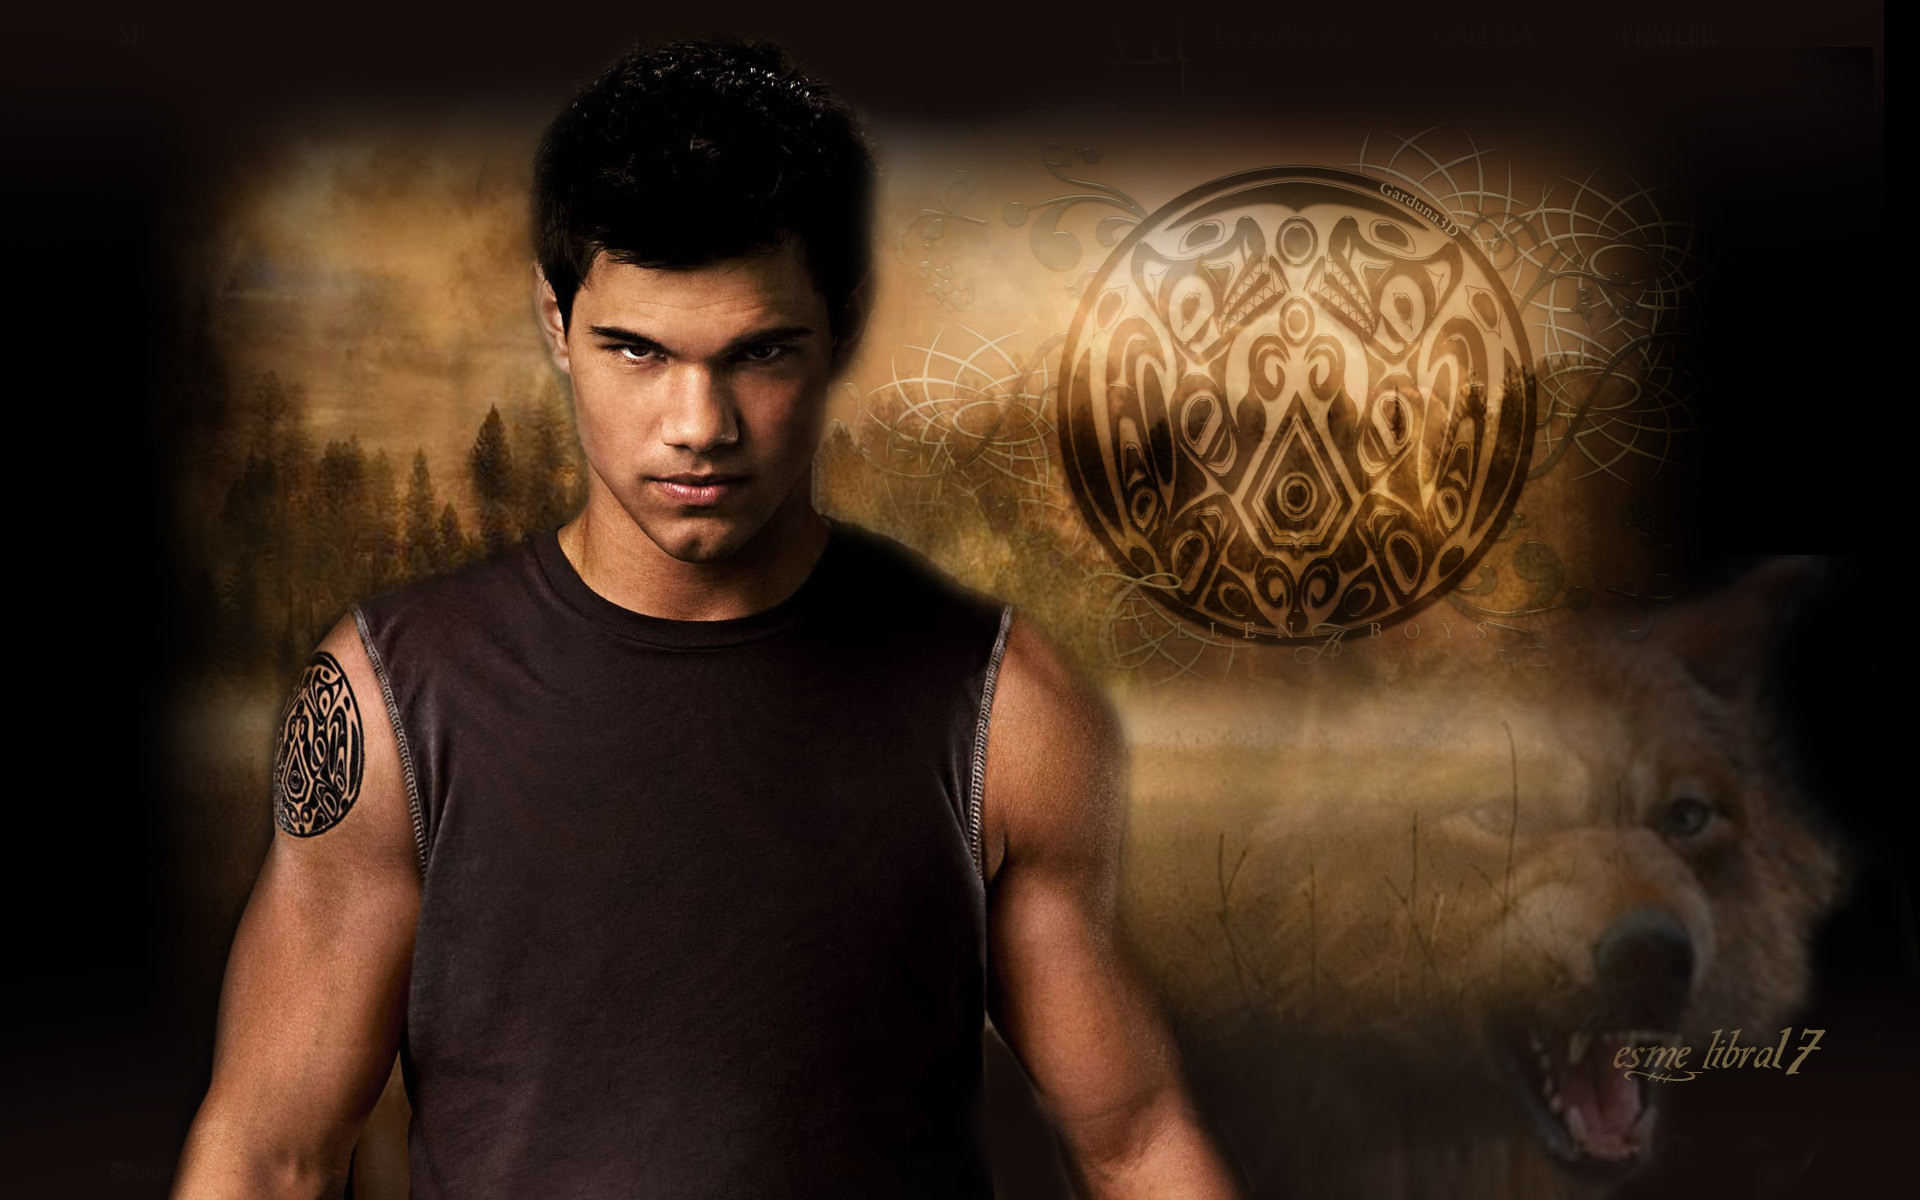 1920x1200 HD Wallpaper and background photos of jacob black for fans of twilight  Crepúsculo images.